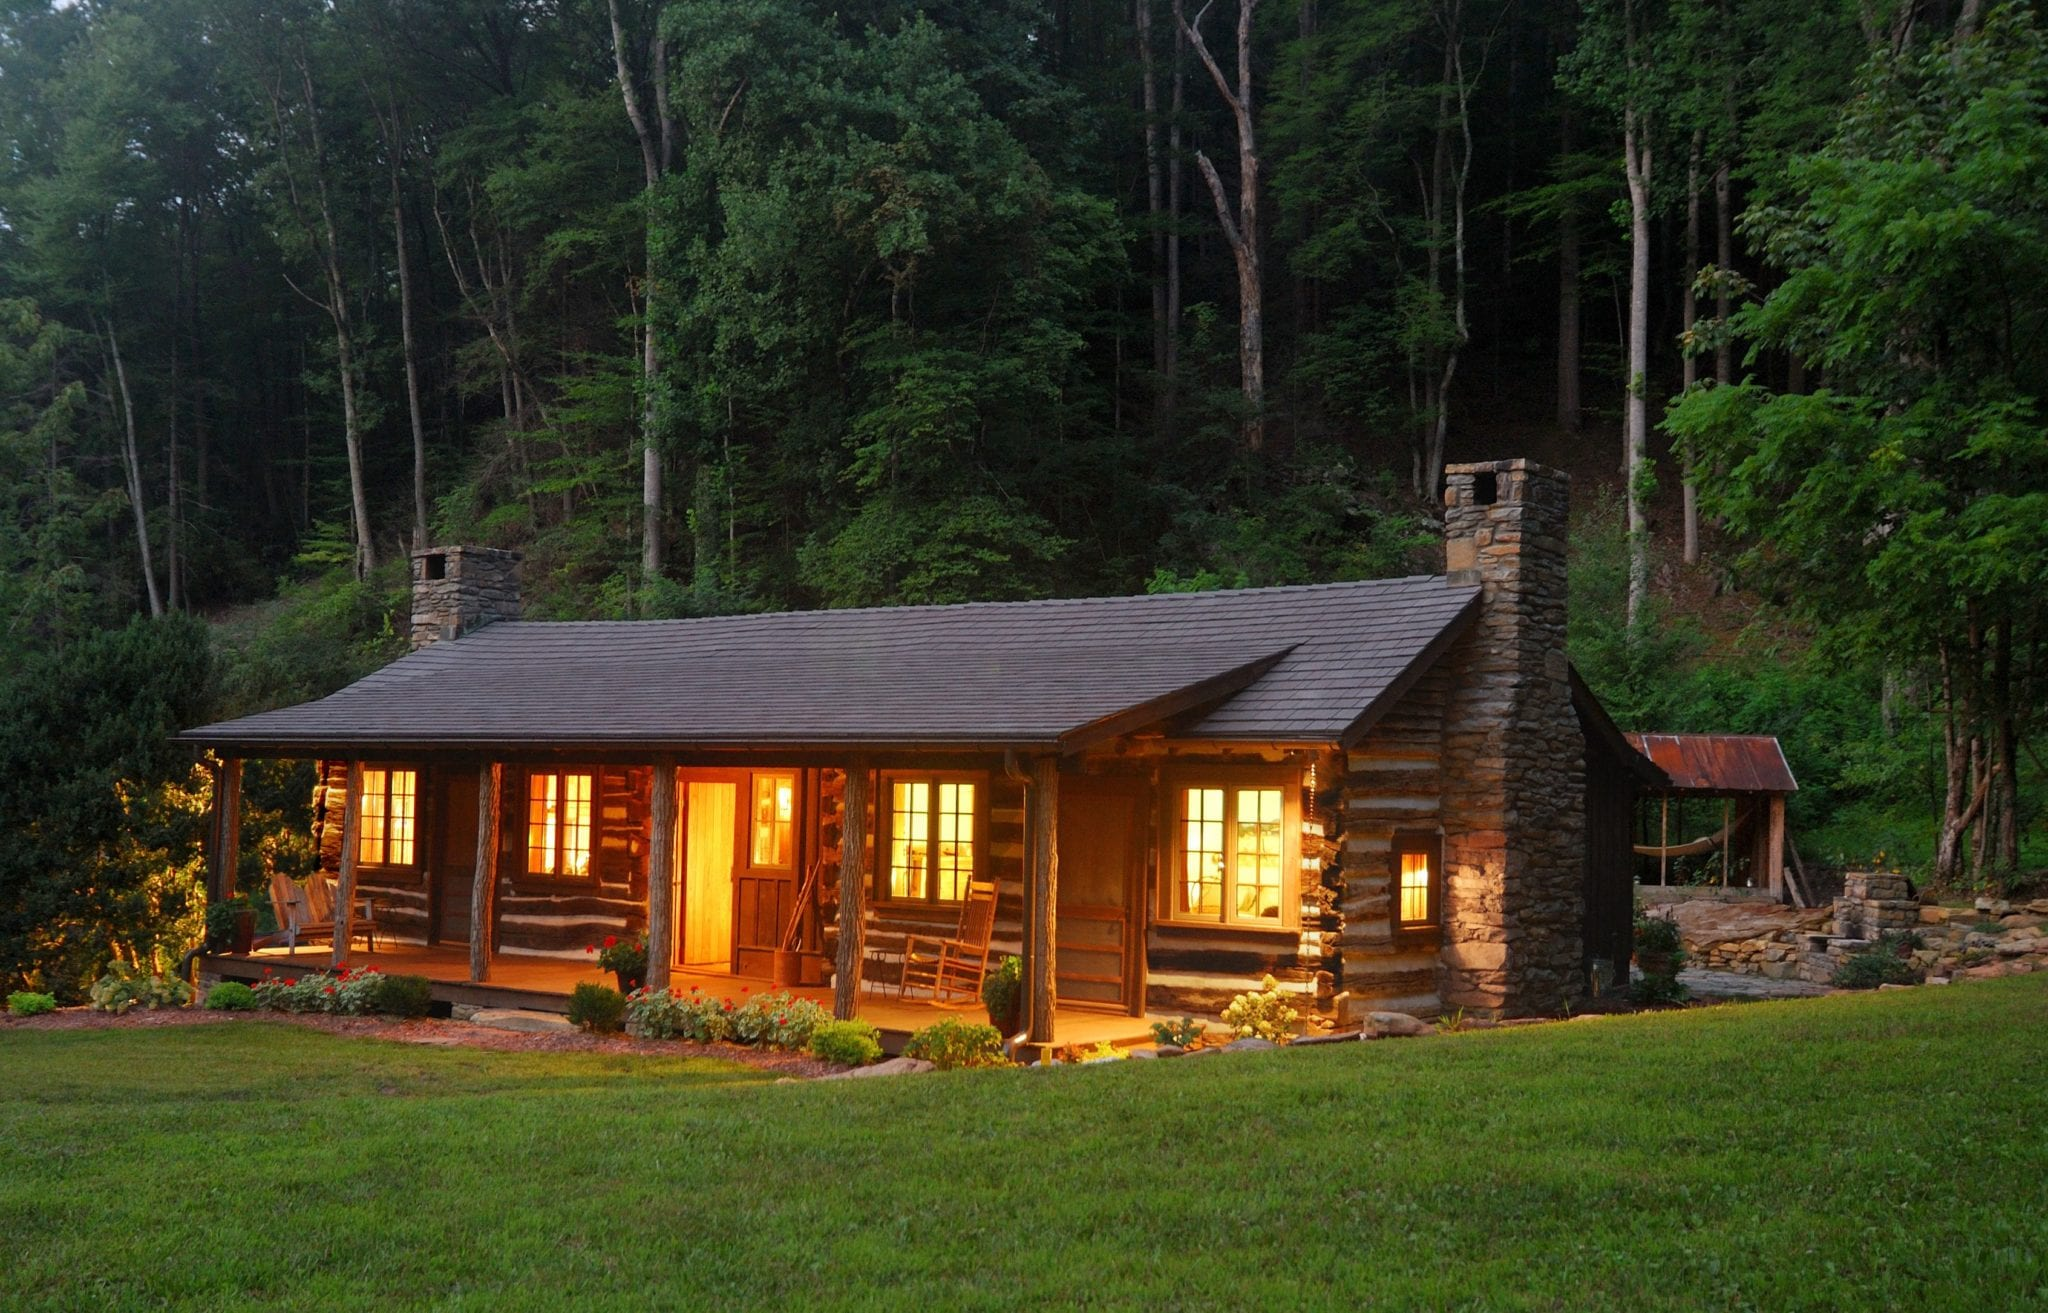 Multiple incidents including rock throwing at a rural for Michigan romantic cabins